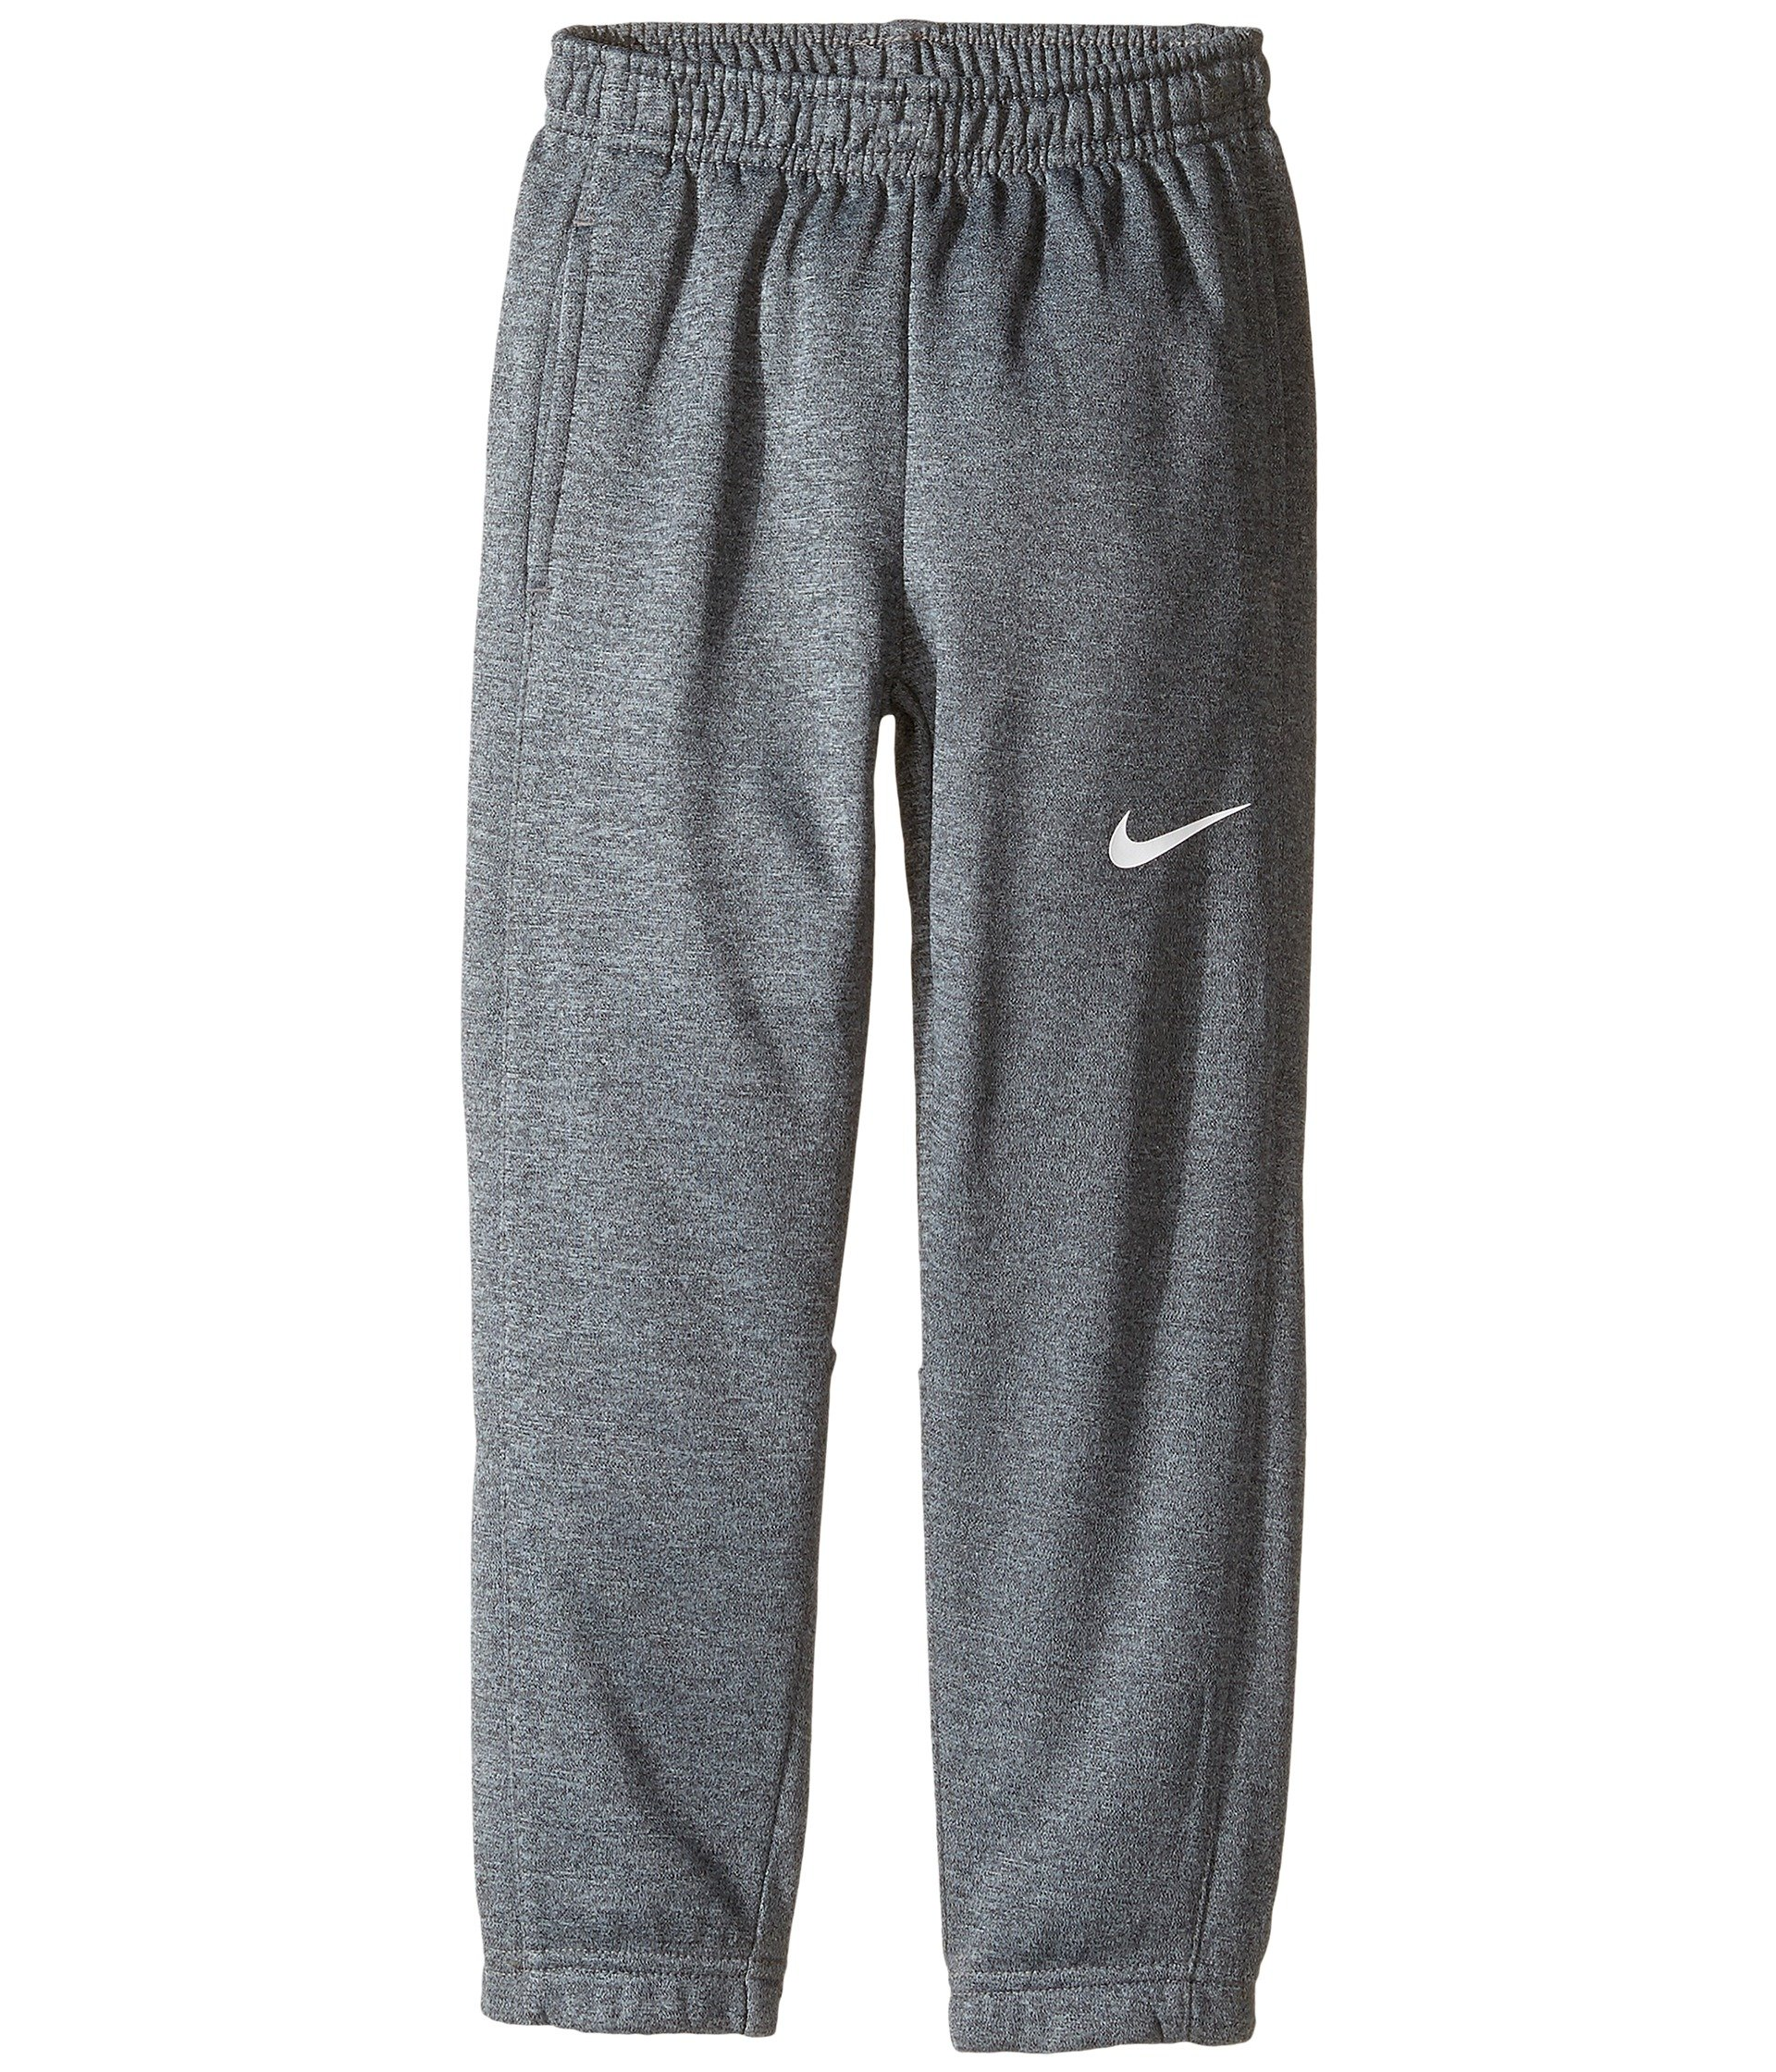 Nike Boy's Therma DRI-FIT Sweat Pants (2T Toddler) by Nike